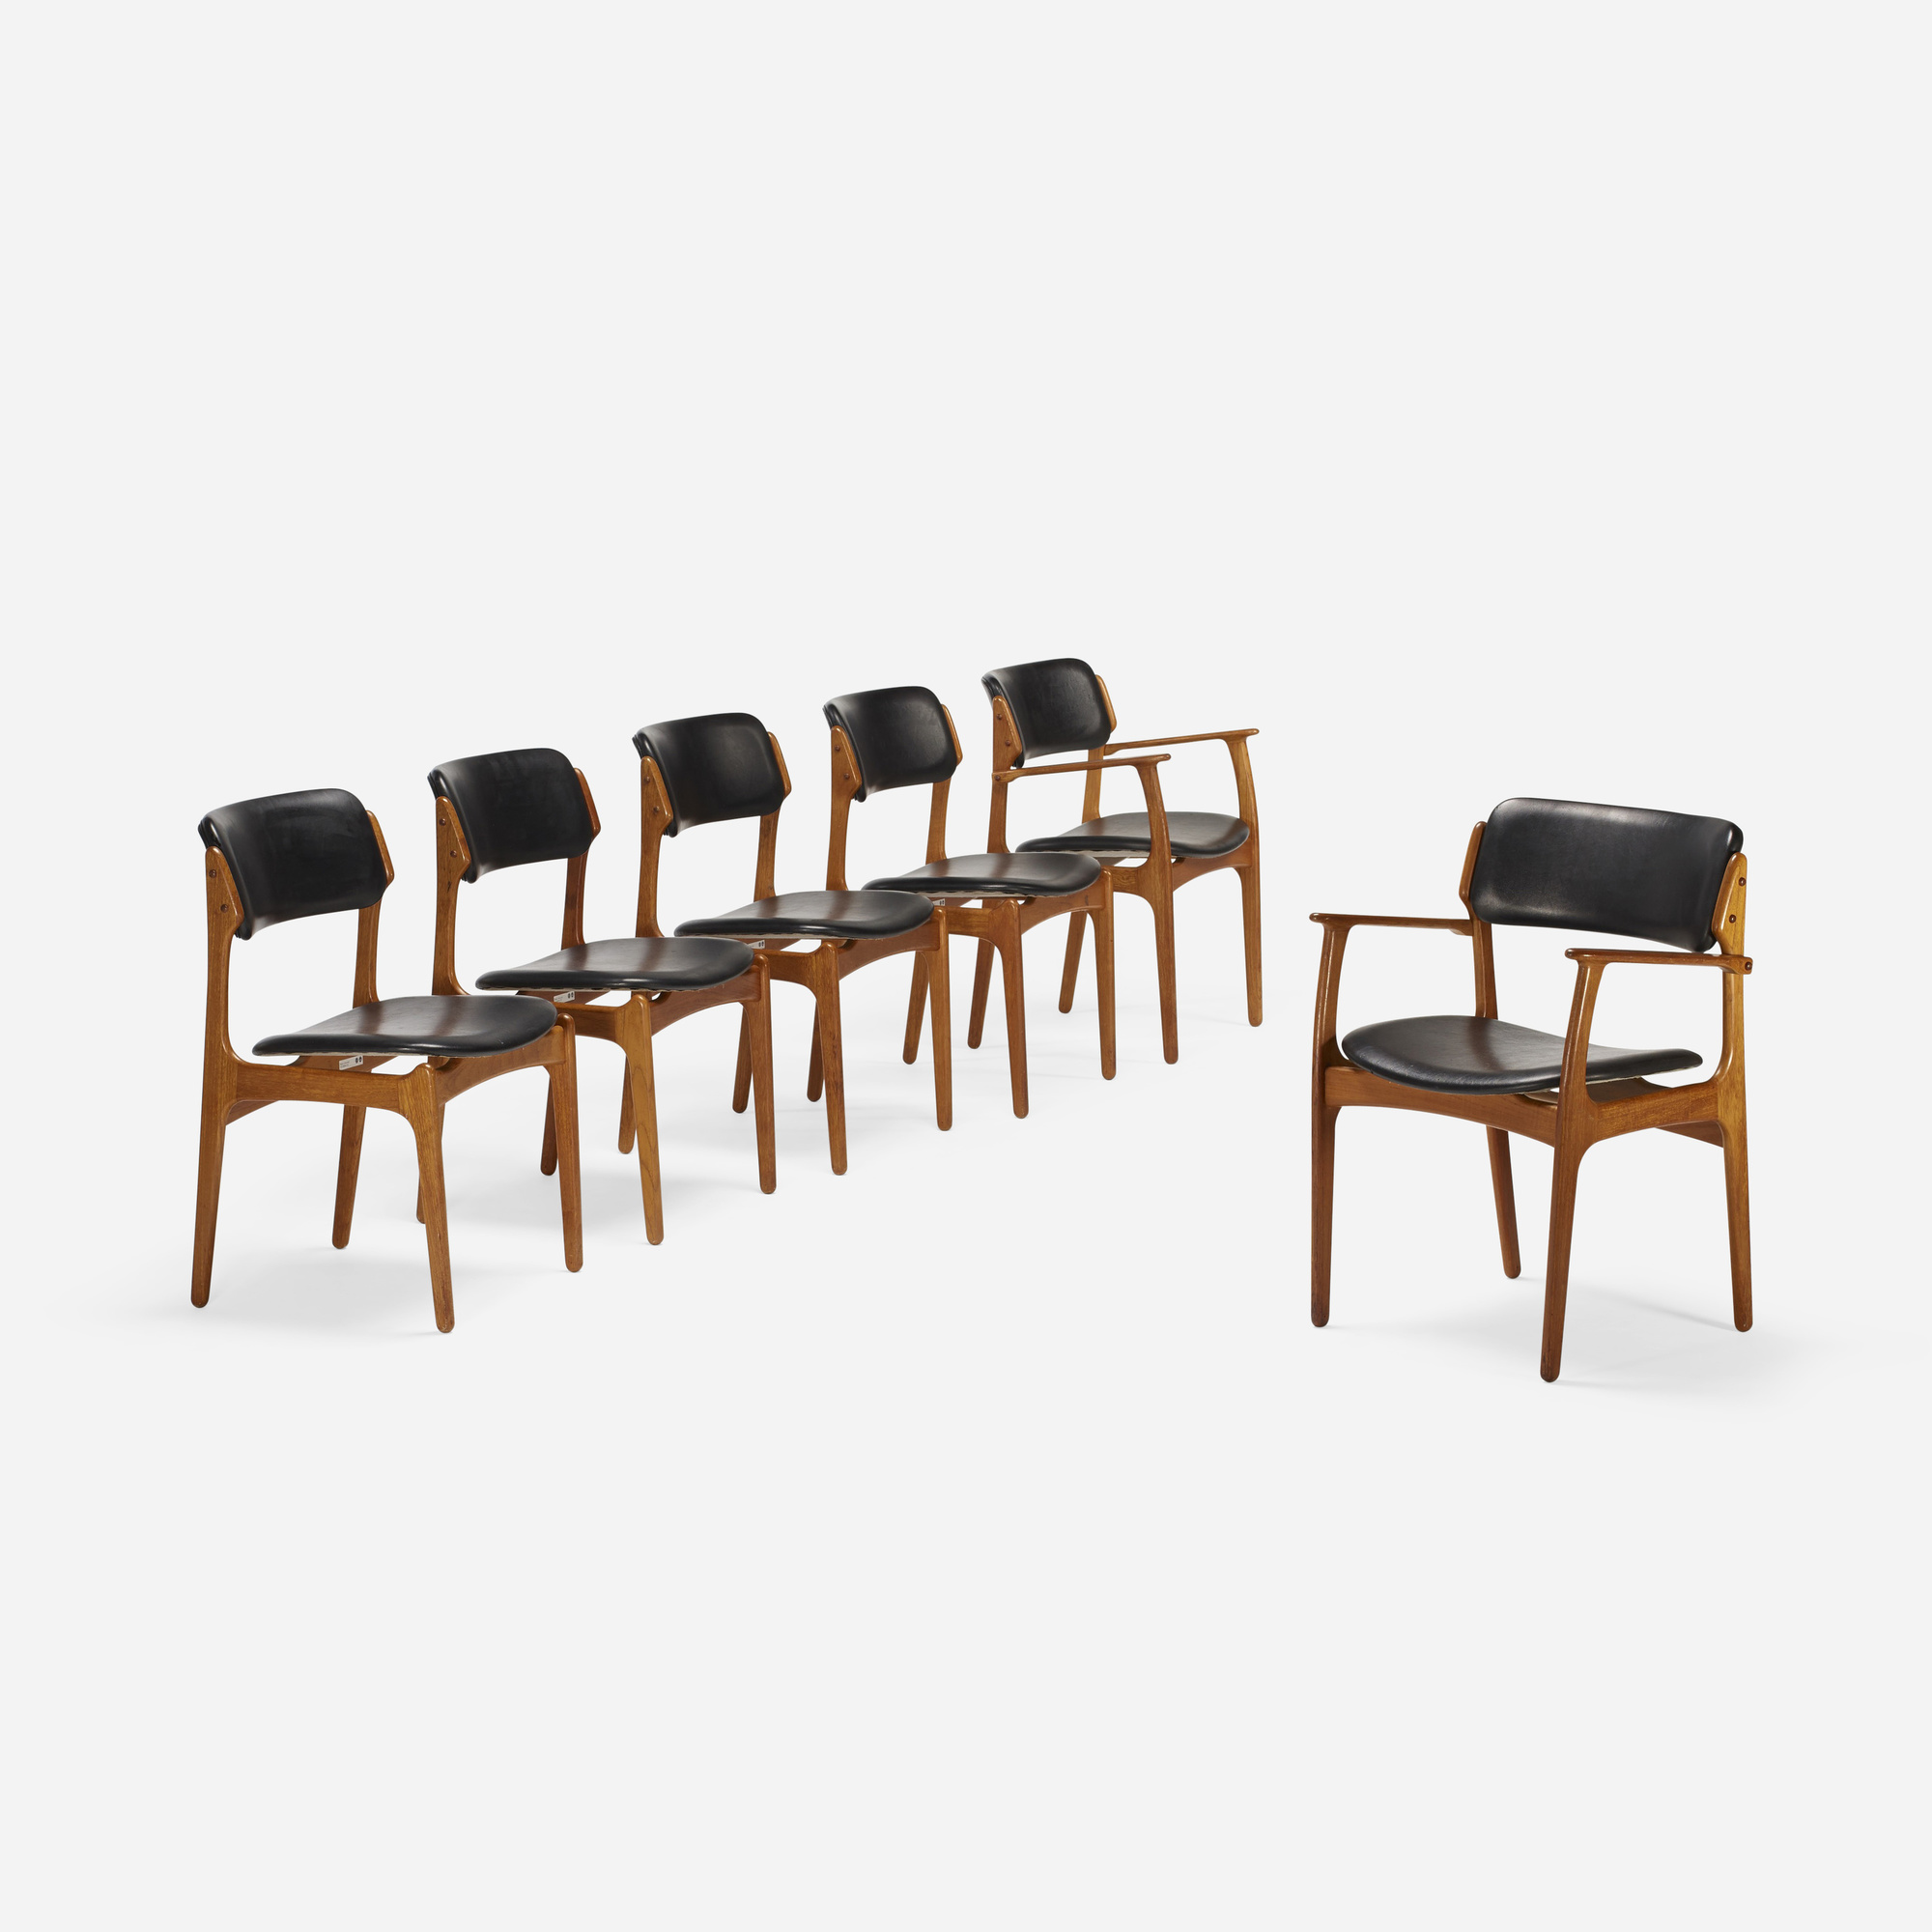 187: Erik Buck / dining chairs model OD 49, set of six (1 of 4)